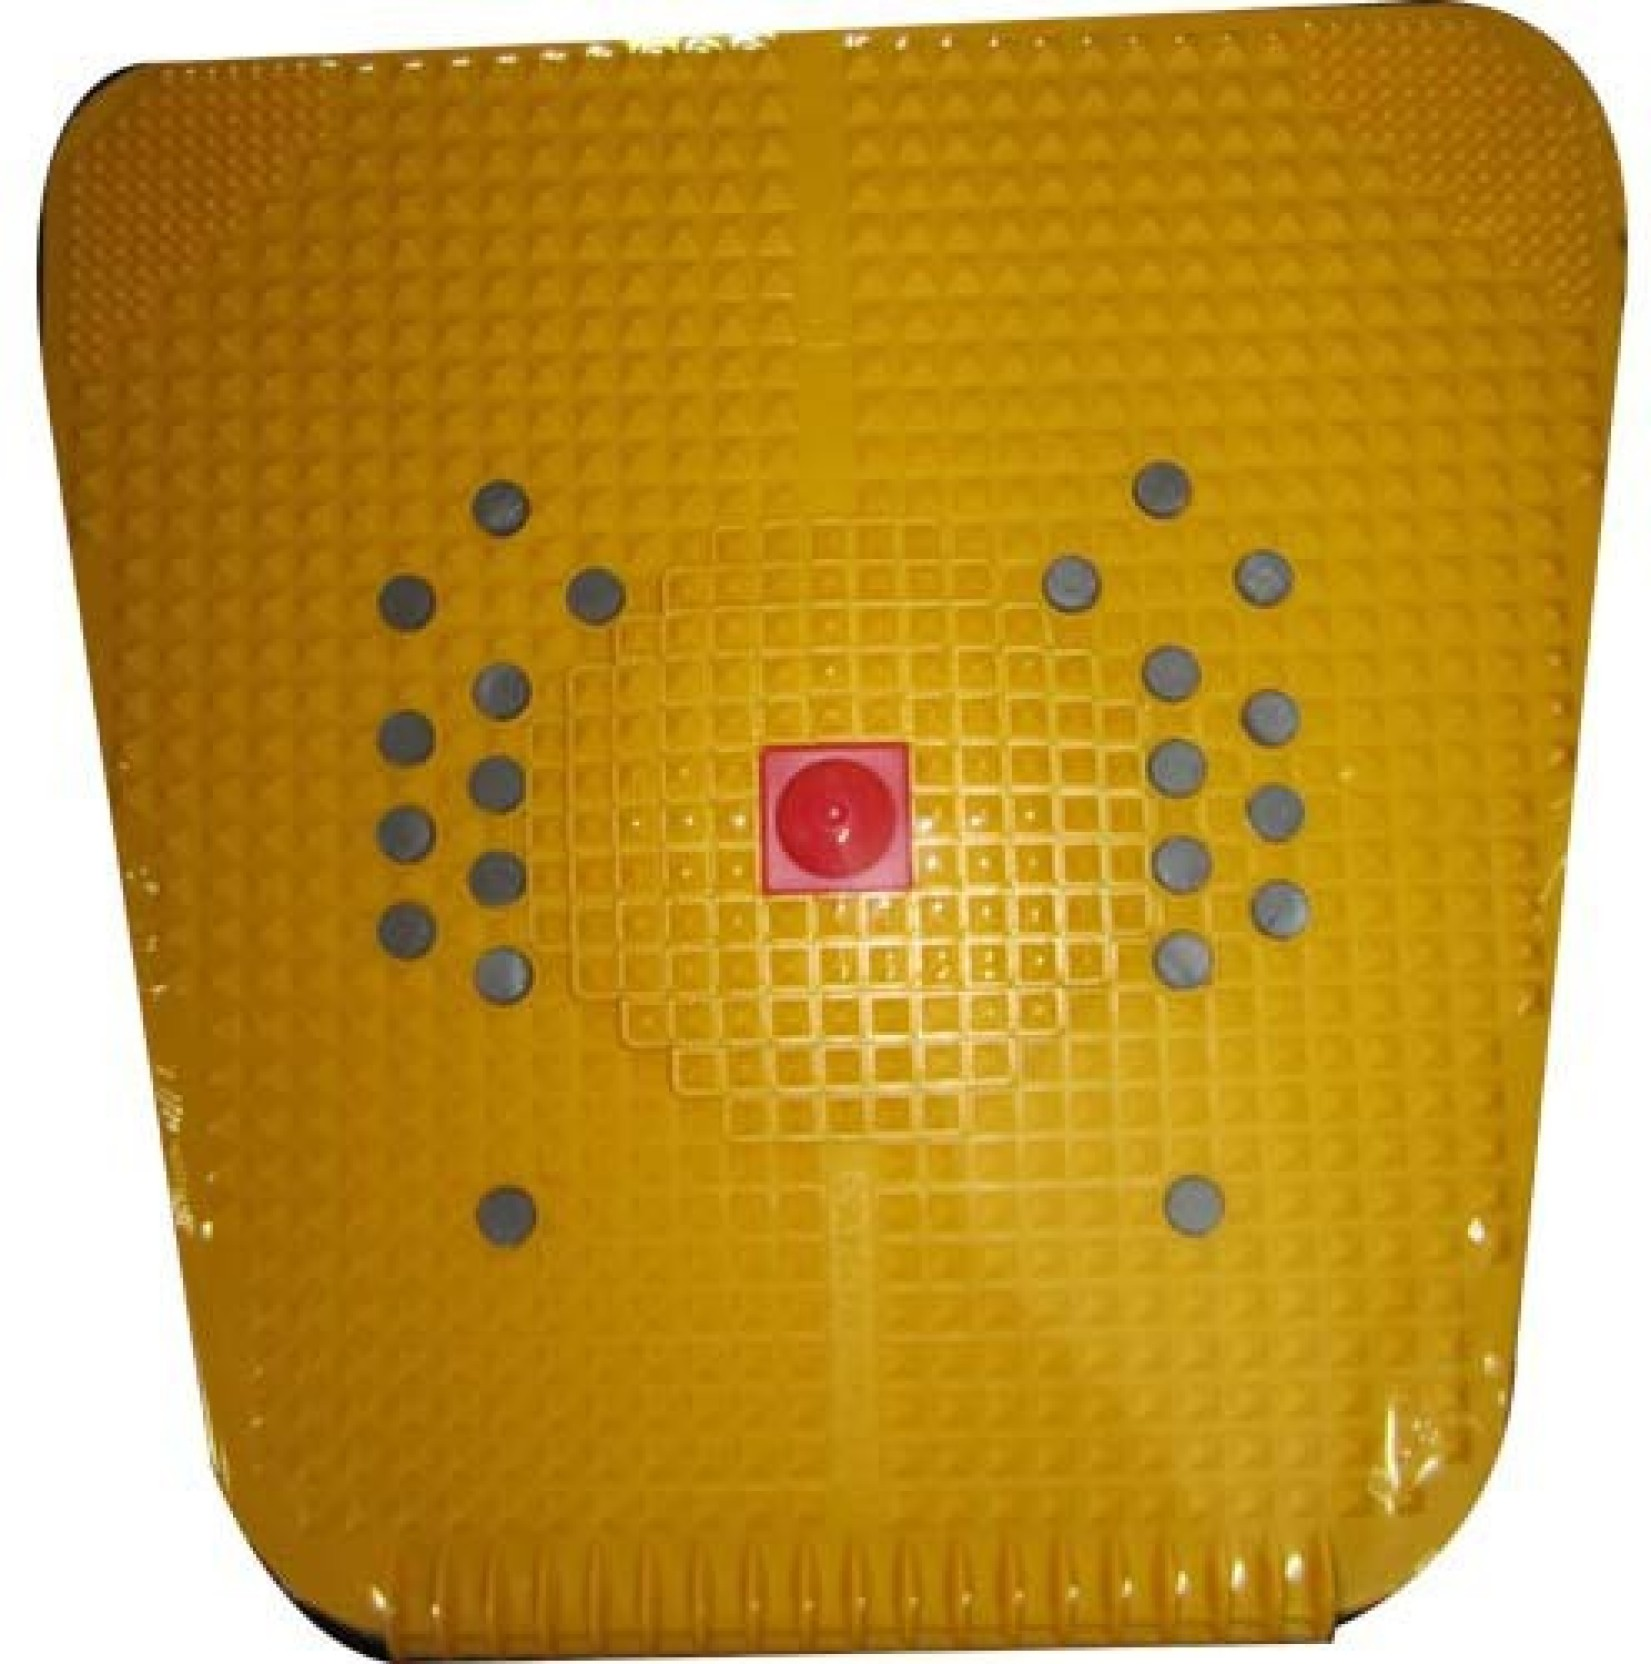 Acm Acupressure Foot Massager With Powerful Magne Pyramids Pain Magnetic Trimmer Jogging Body Plate Waist Twisting Add To Cart